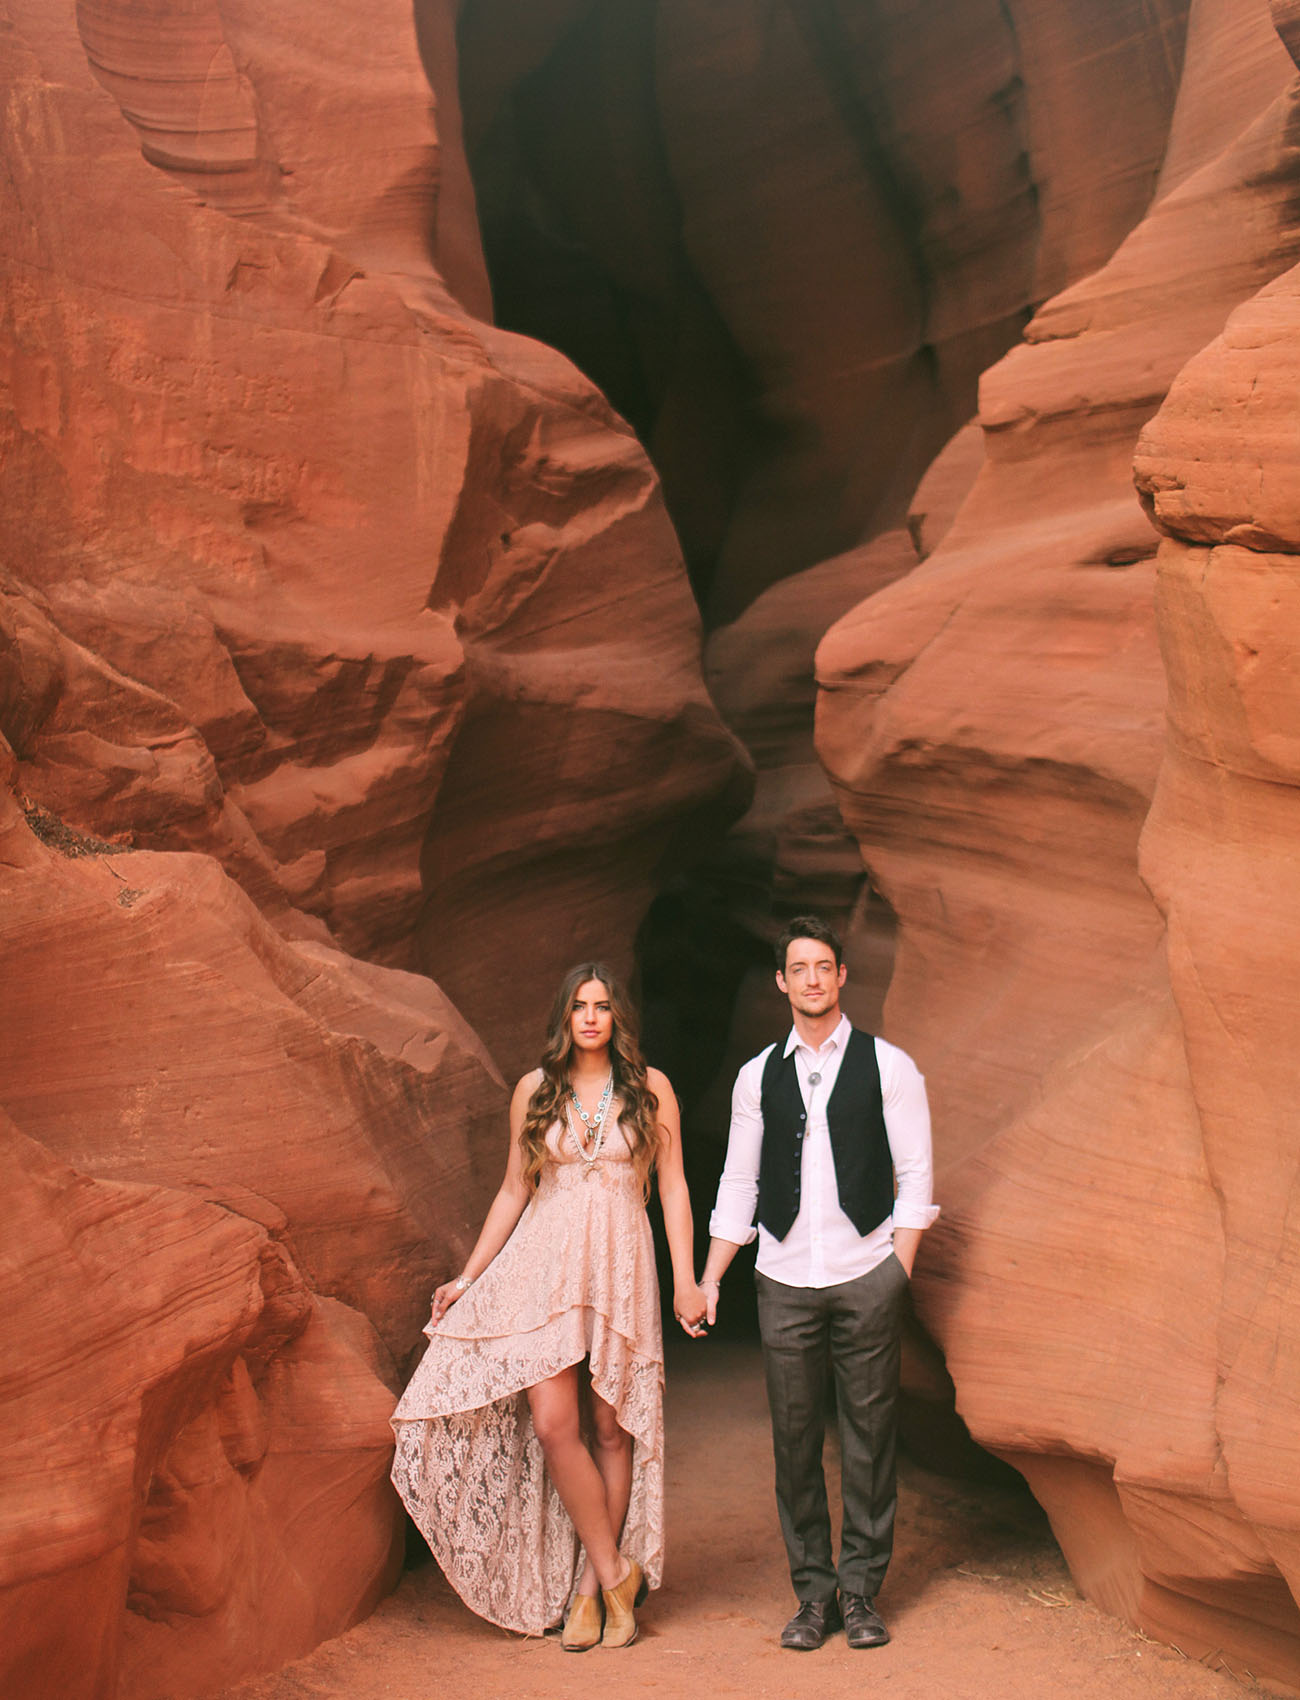 Magical Elopement at Horseshoe Bend: Jamie + Justin